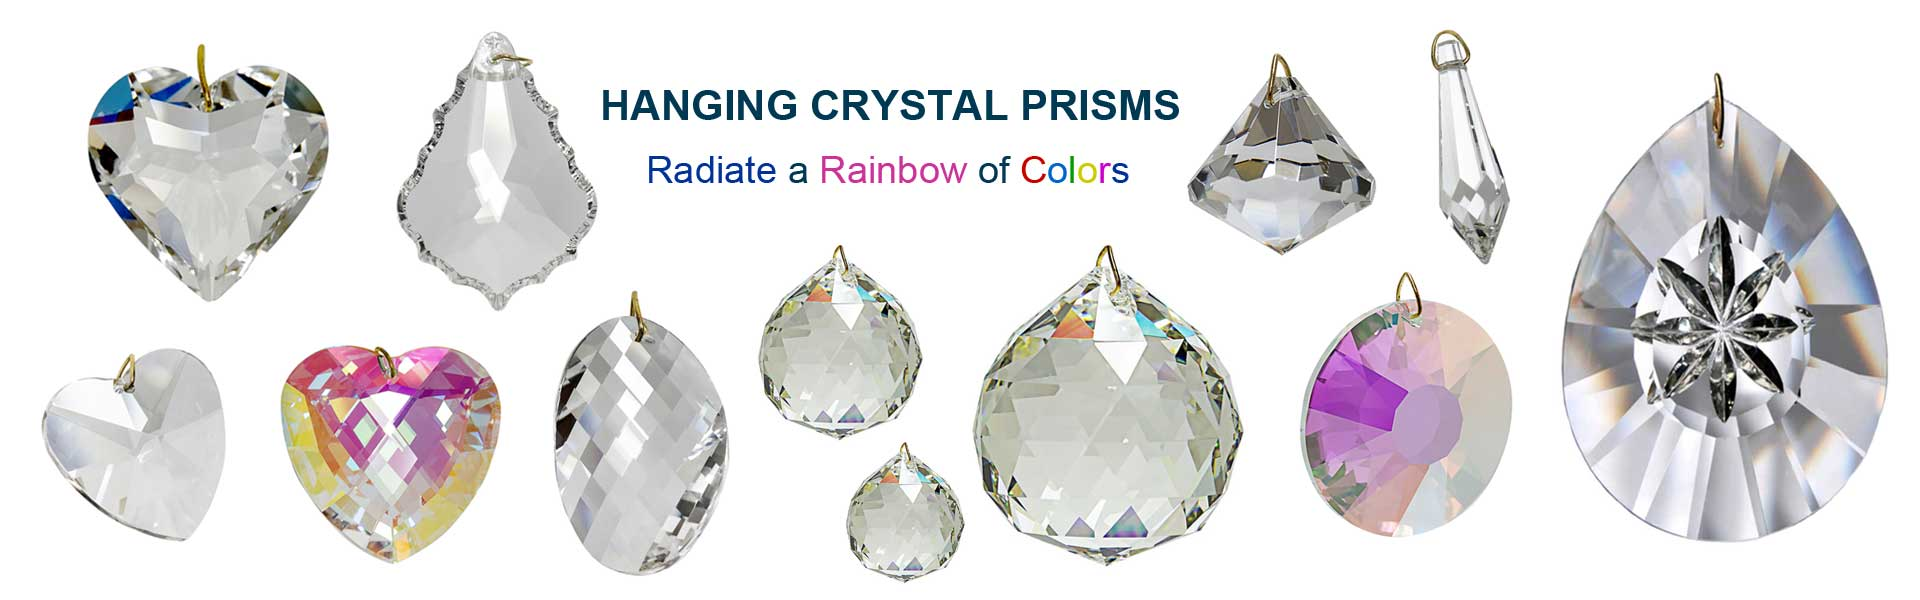 Hanging Crystals, Hanging Crystal Prisms, Window Suncatcher Prisms, Hanging Feng Shui Crystal Balls